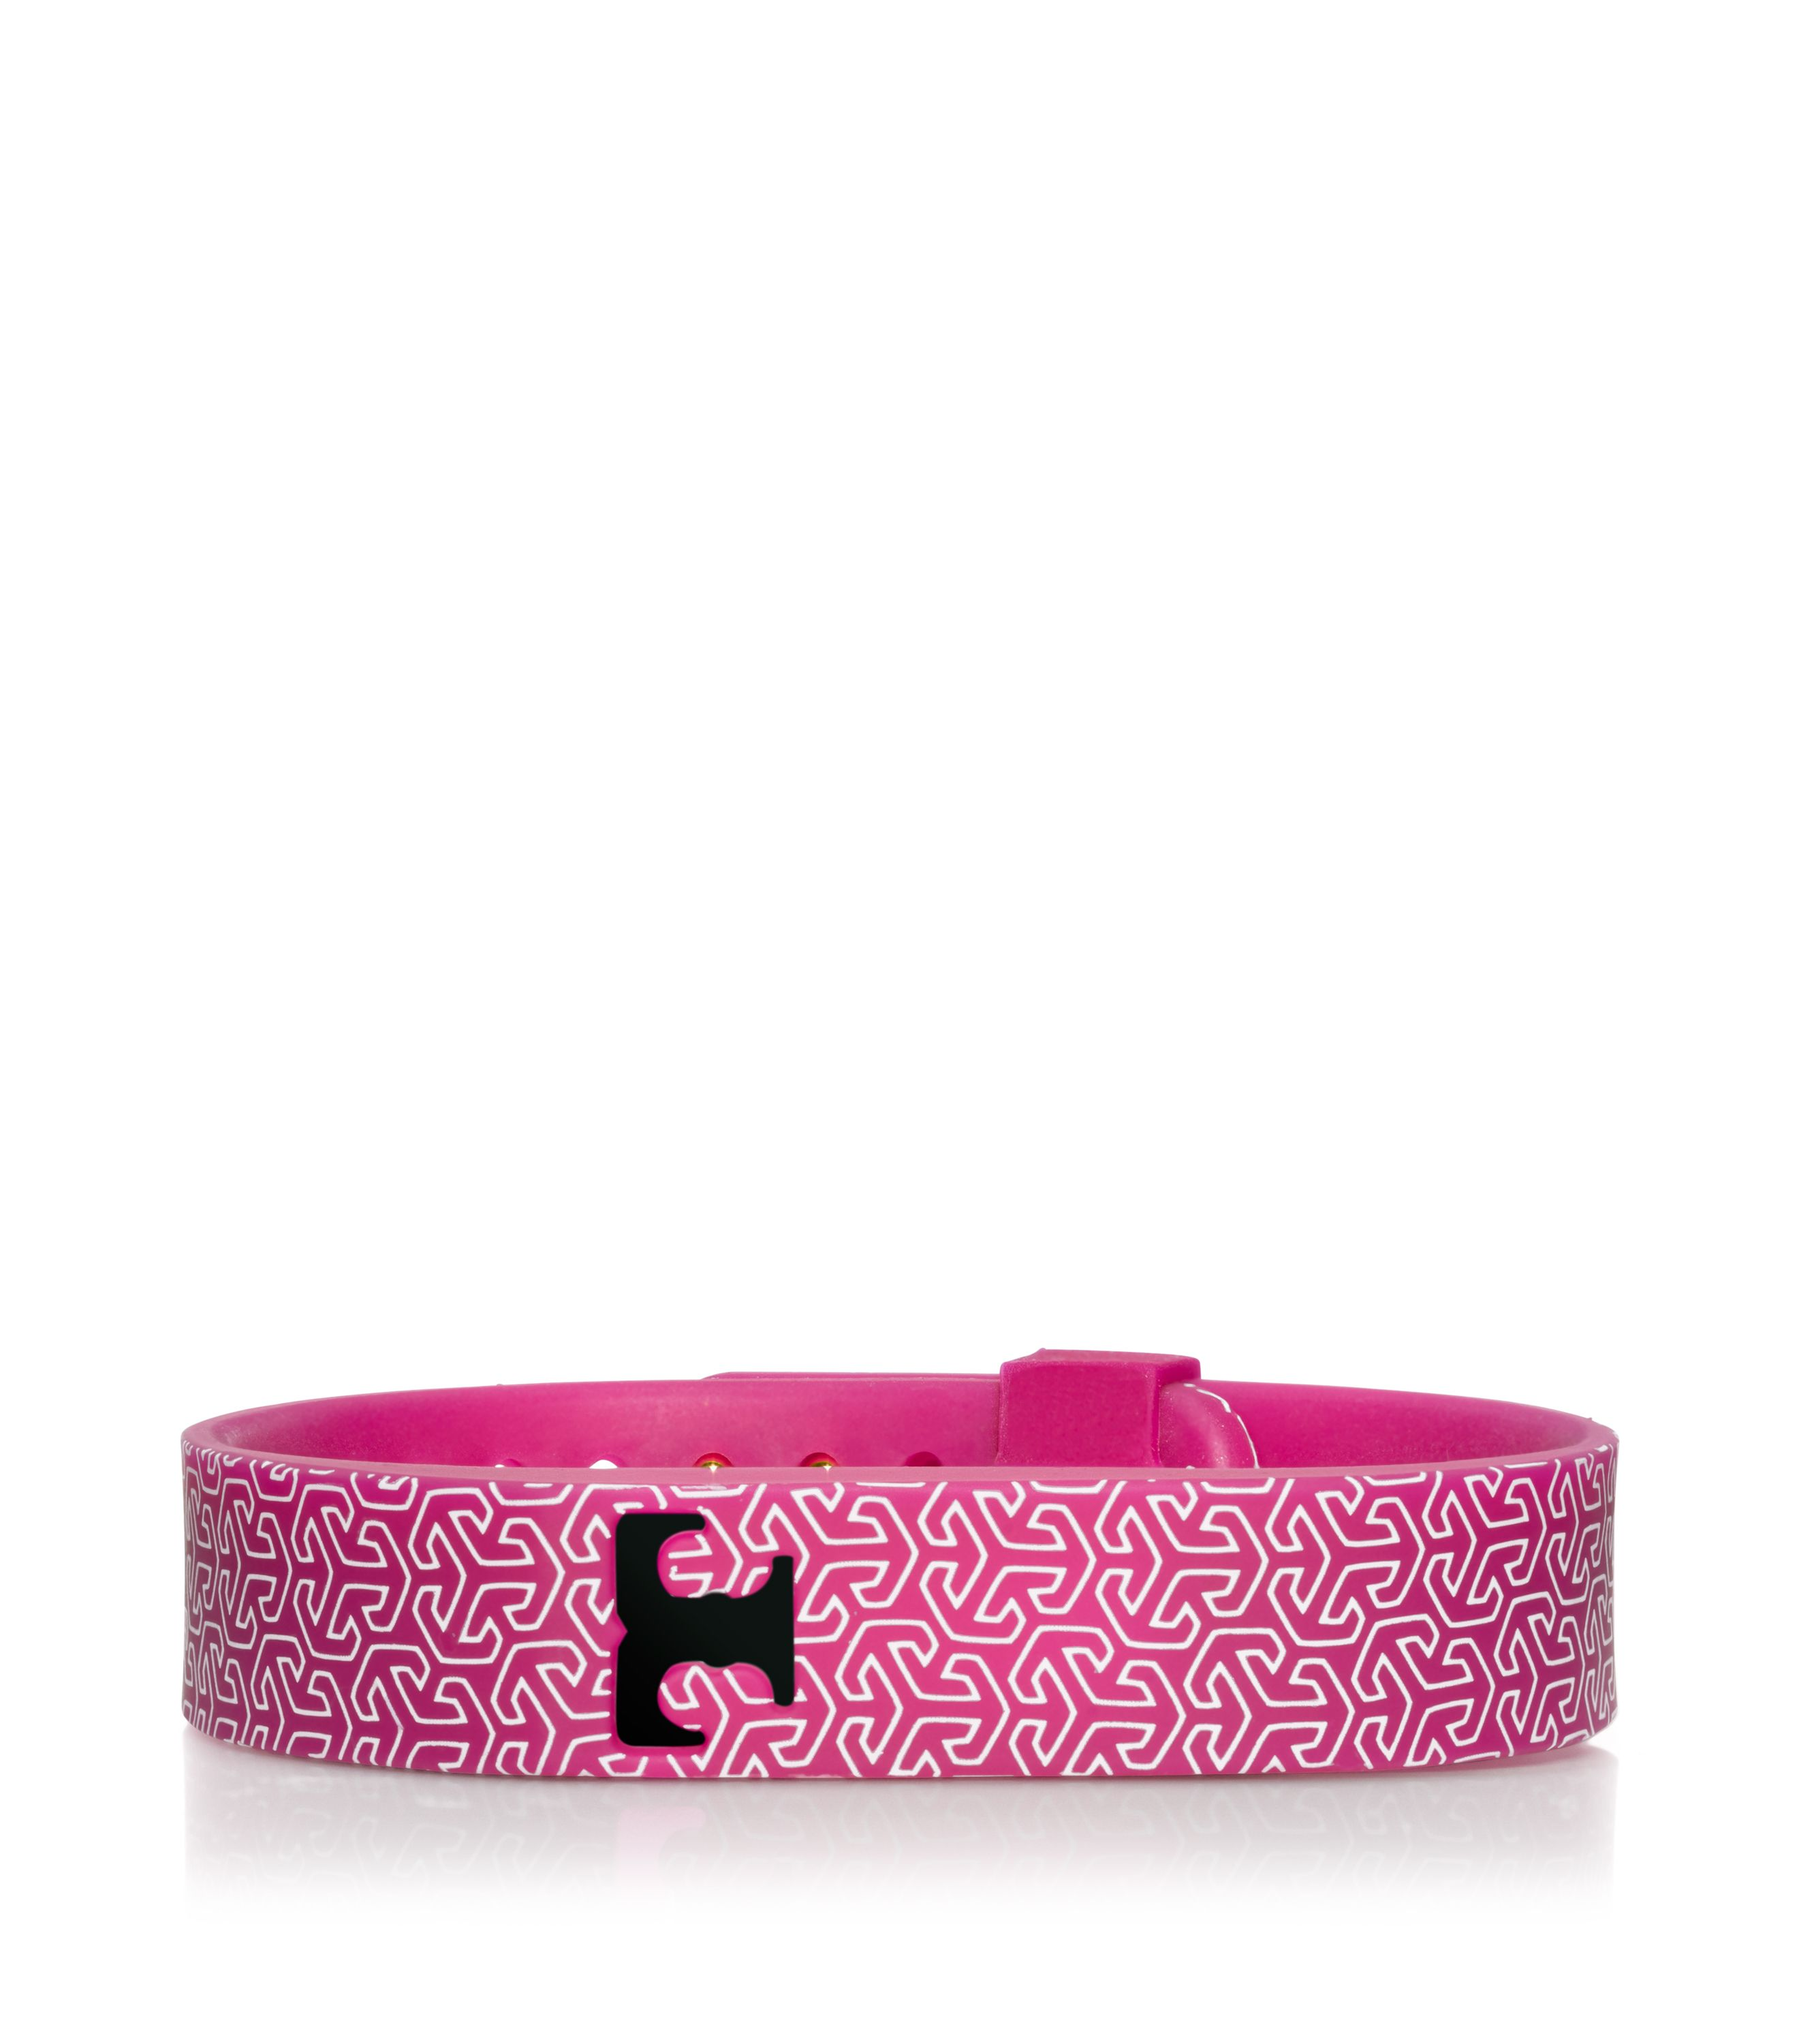 Sale alerts for Tory Burch Tory Burch for Fitbit Silicone Printed Bracelet - Covvet